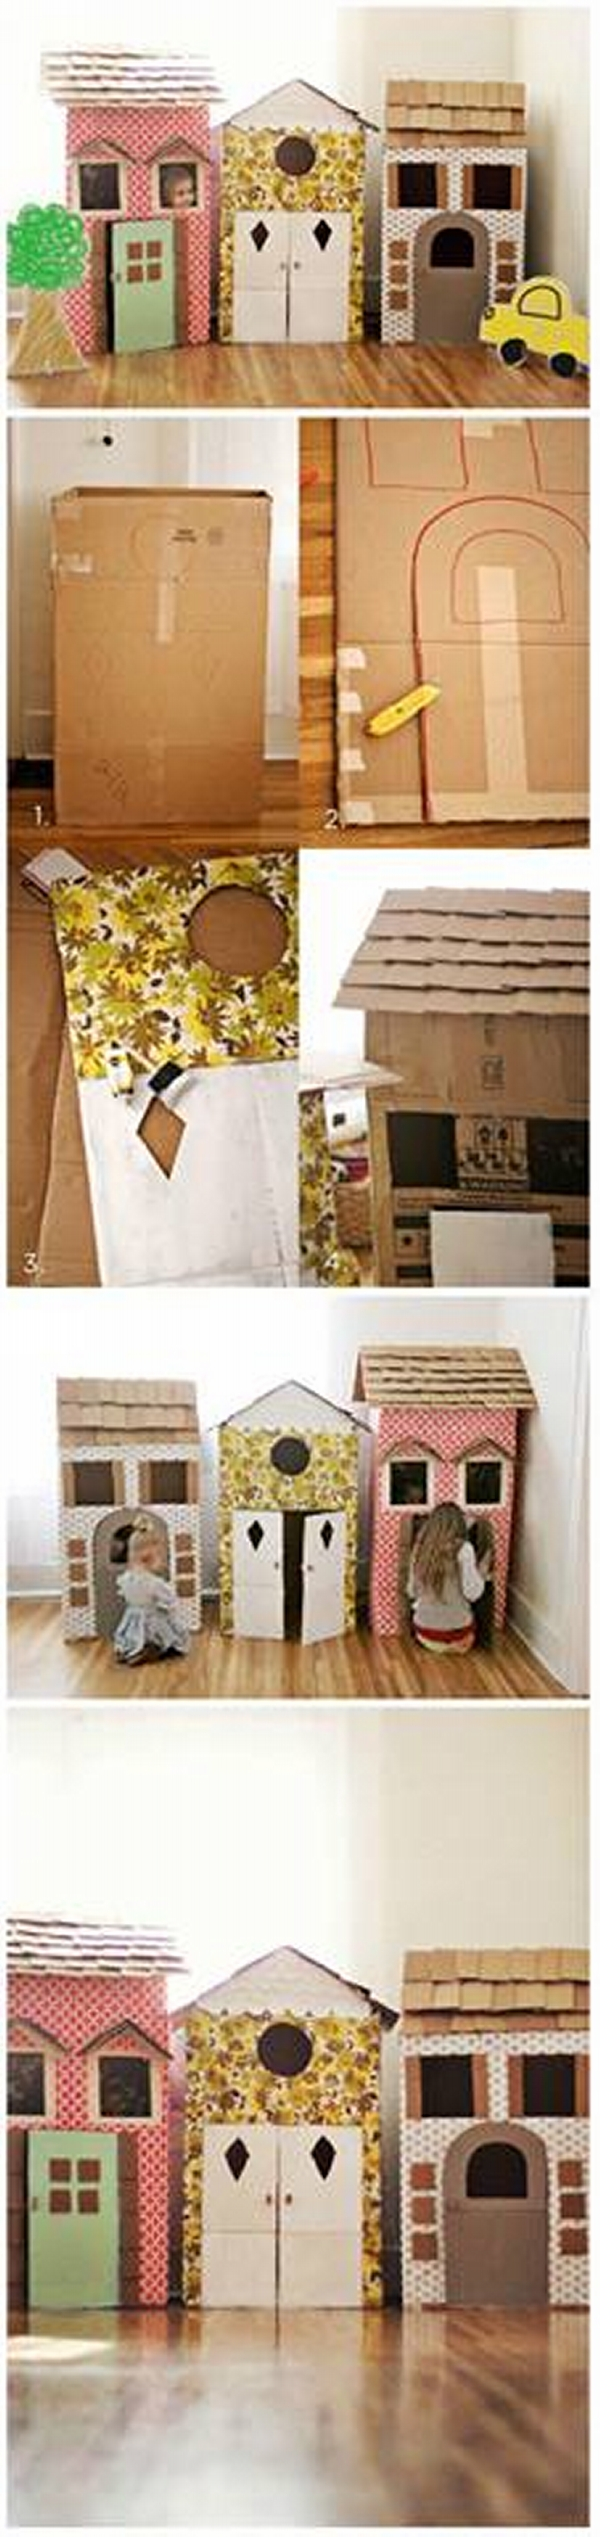 Cardboard Kids House Ideas